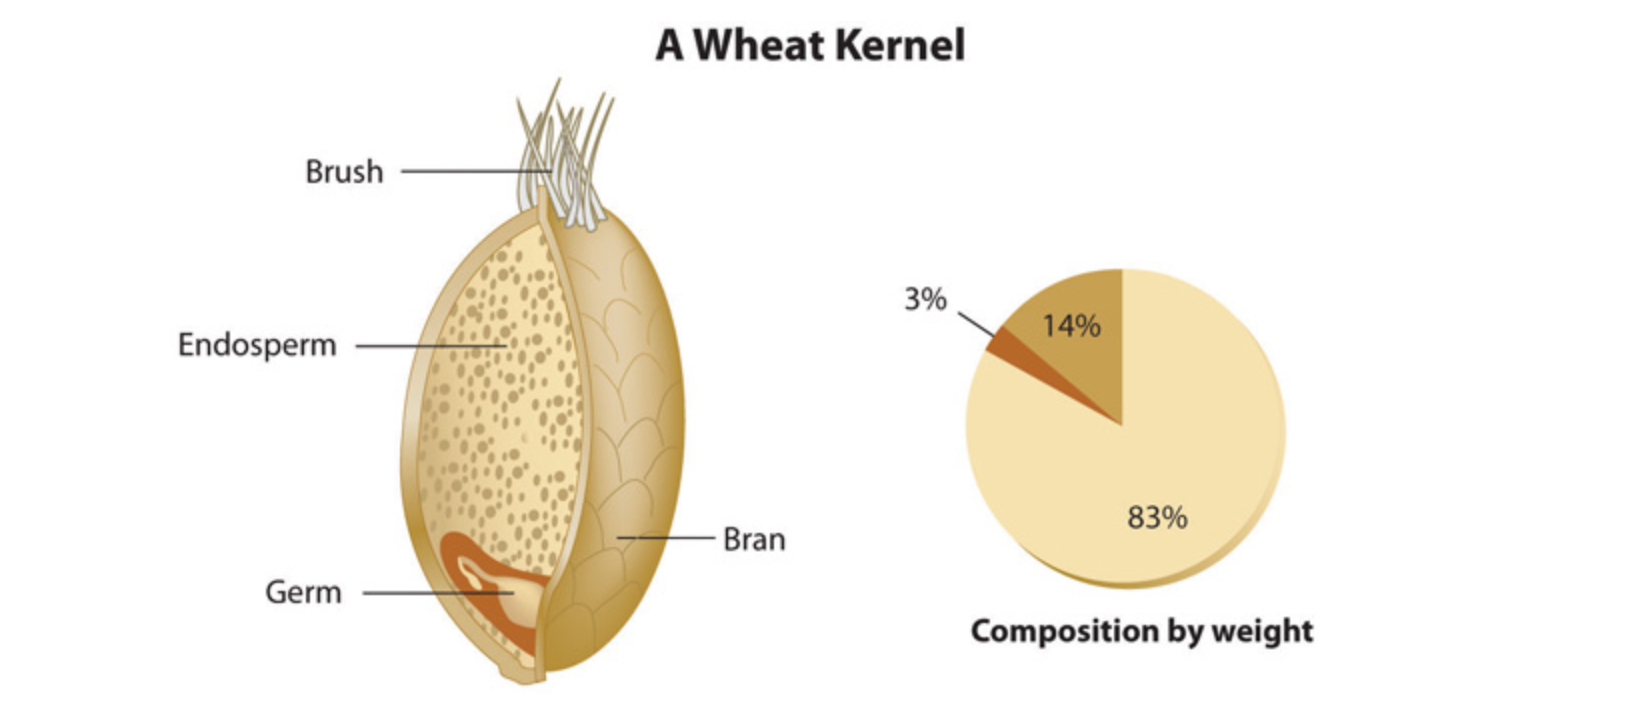 An image of the inside of a wheat kernel, and an accompanying graph that displays composition by weight.